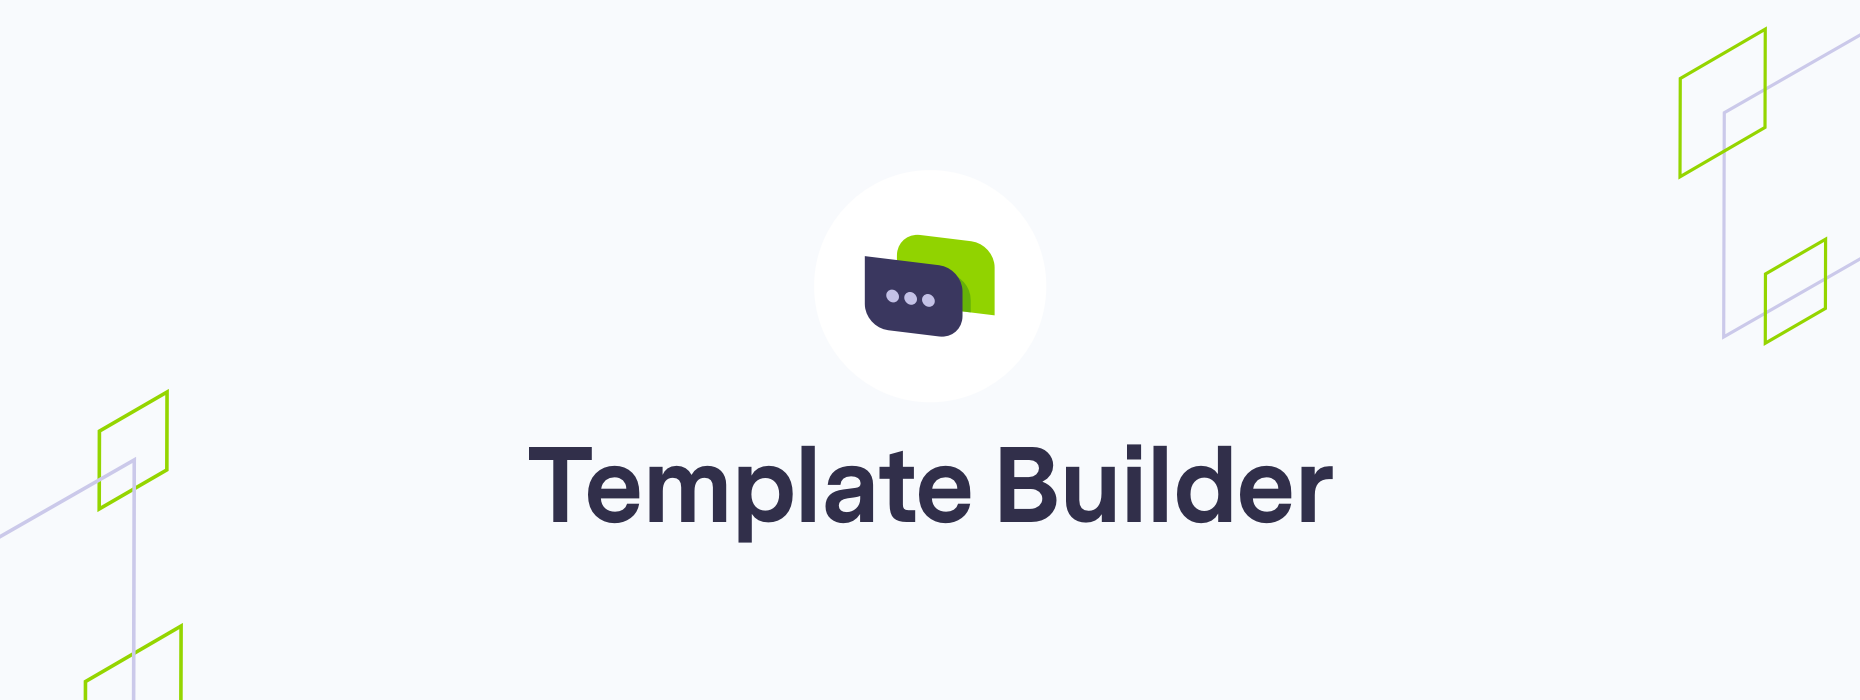 Template Builder for questionnaires